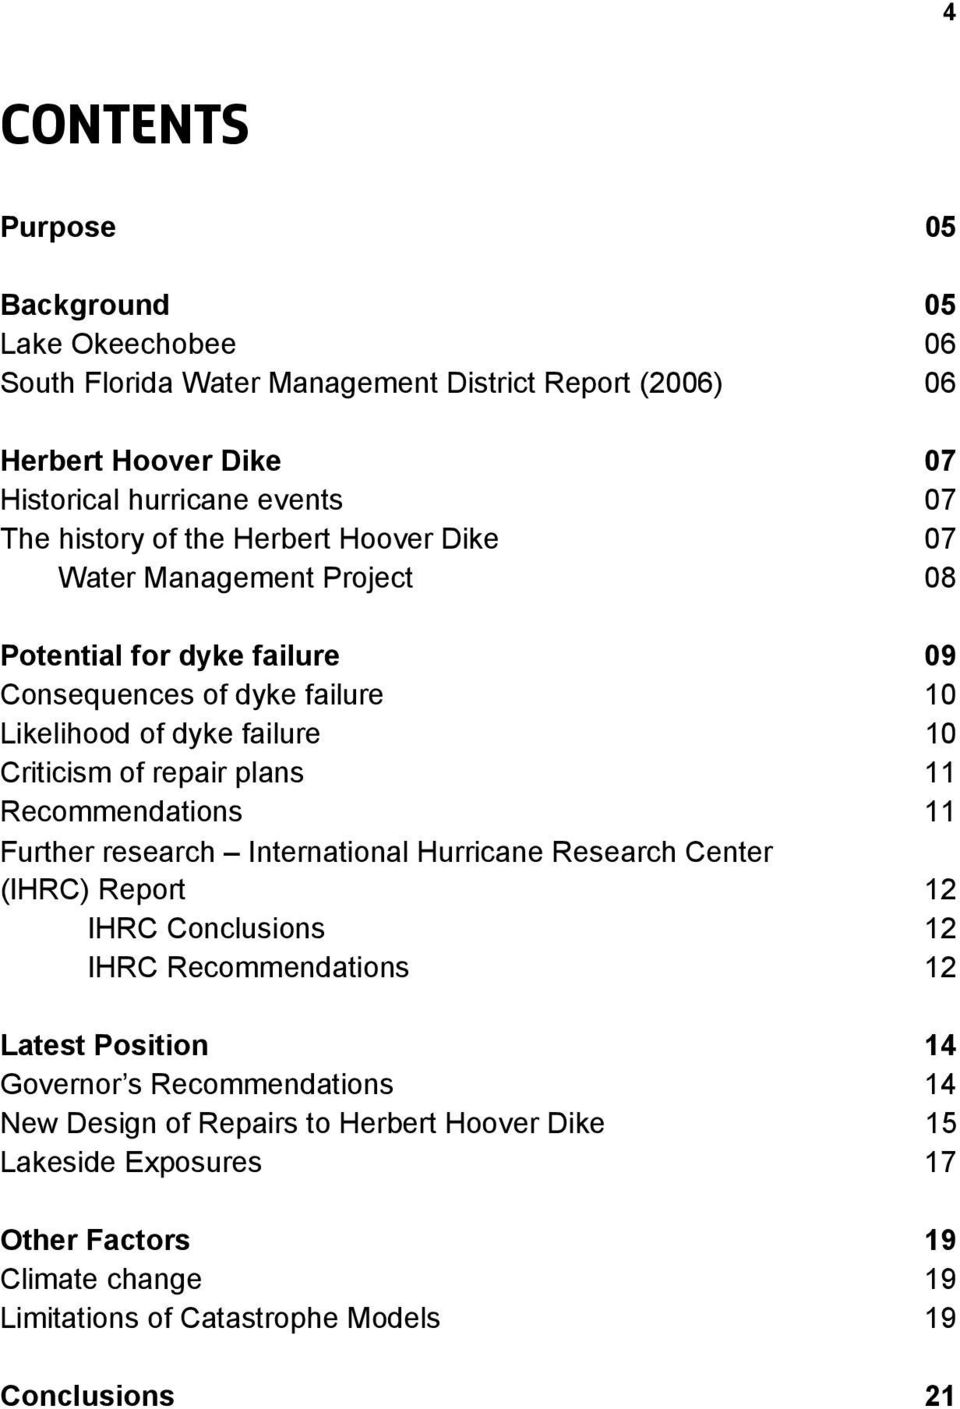 repair plans 11 Recommendations 11 Further research International Hurricane Research Center (IHRC) Report 12 IHRC Conclusions 12 IHRC Recommendations 12 Latest Position 14